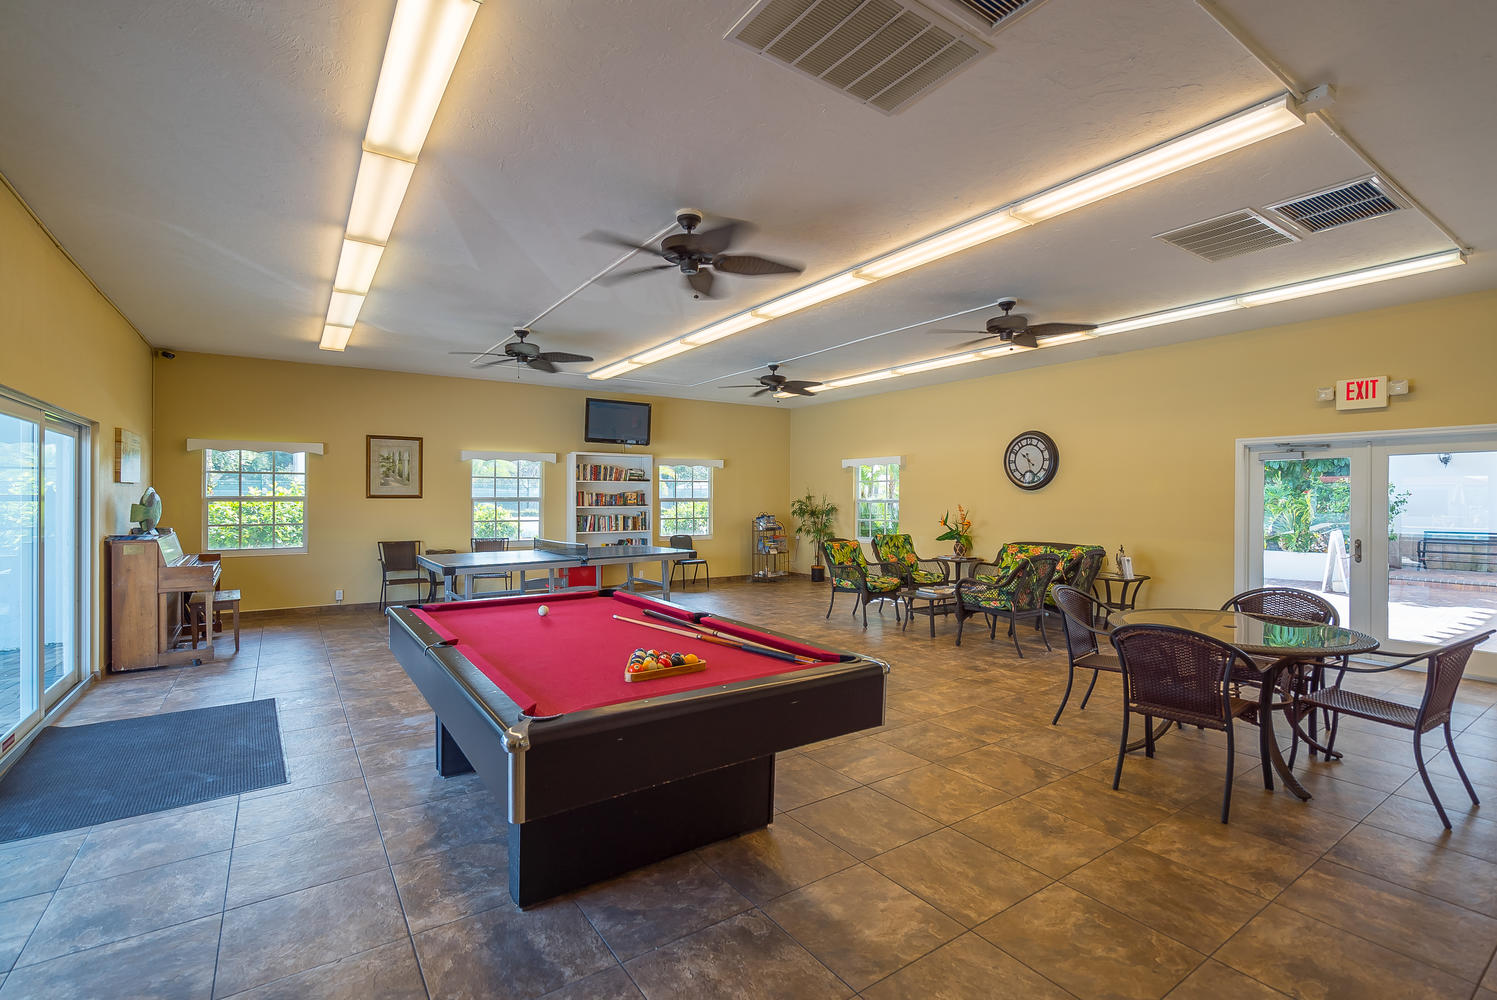 Communal recreation room